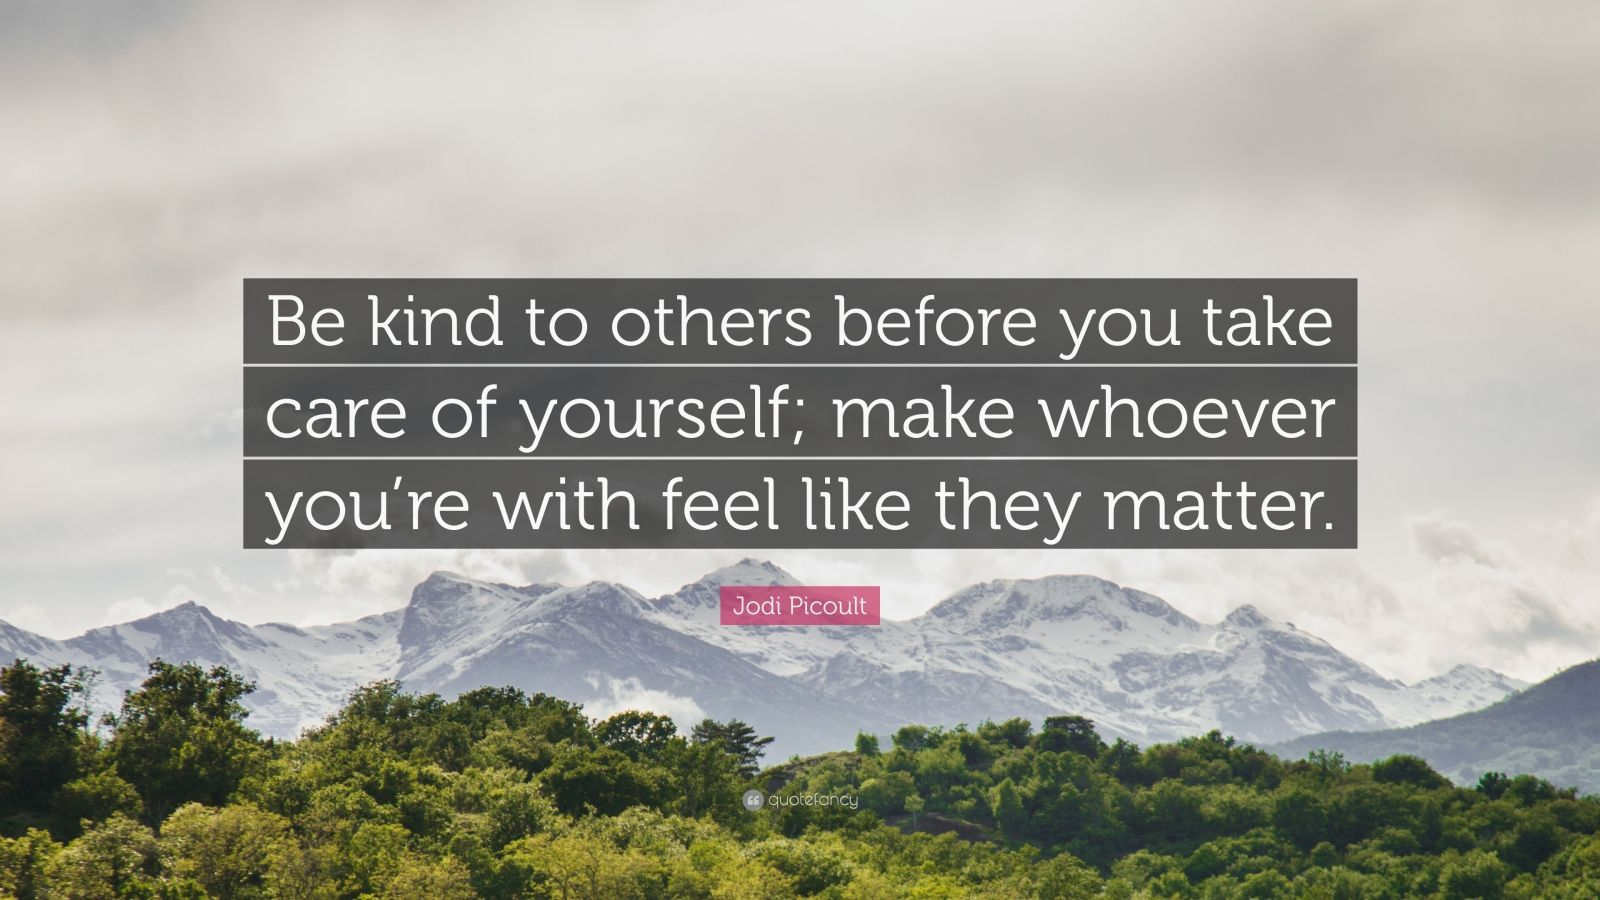 """Jodi Picoult Quote: """"Be kind to others before you take care of yourself; make whoever you're with feel like they matter."""""""